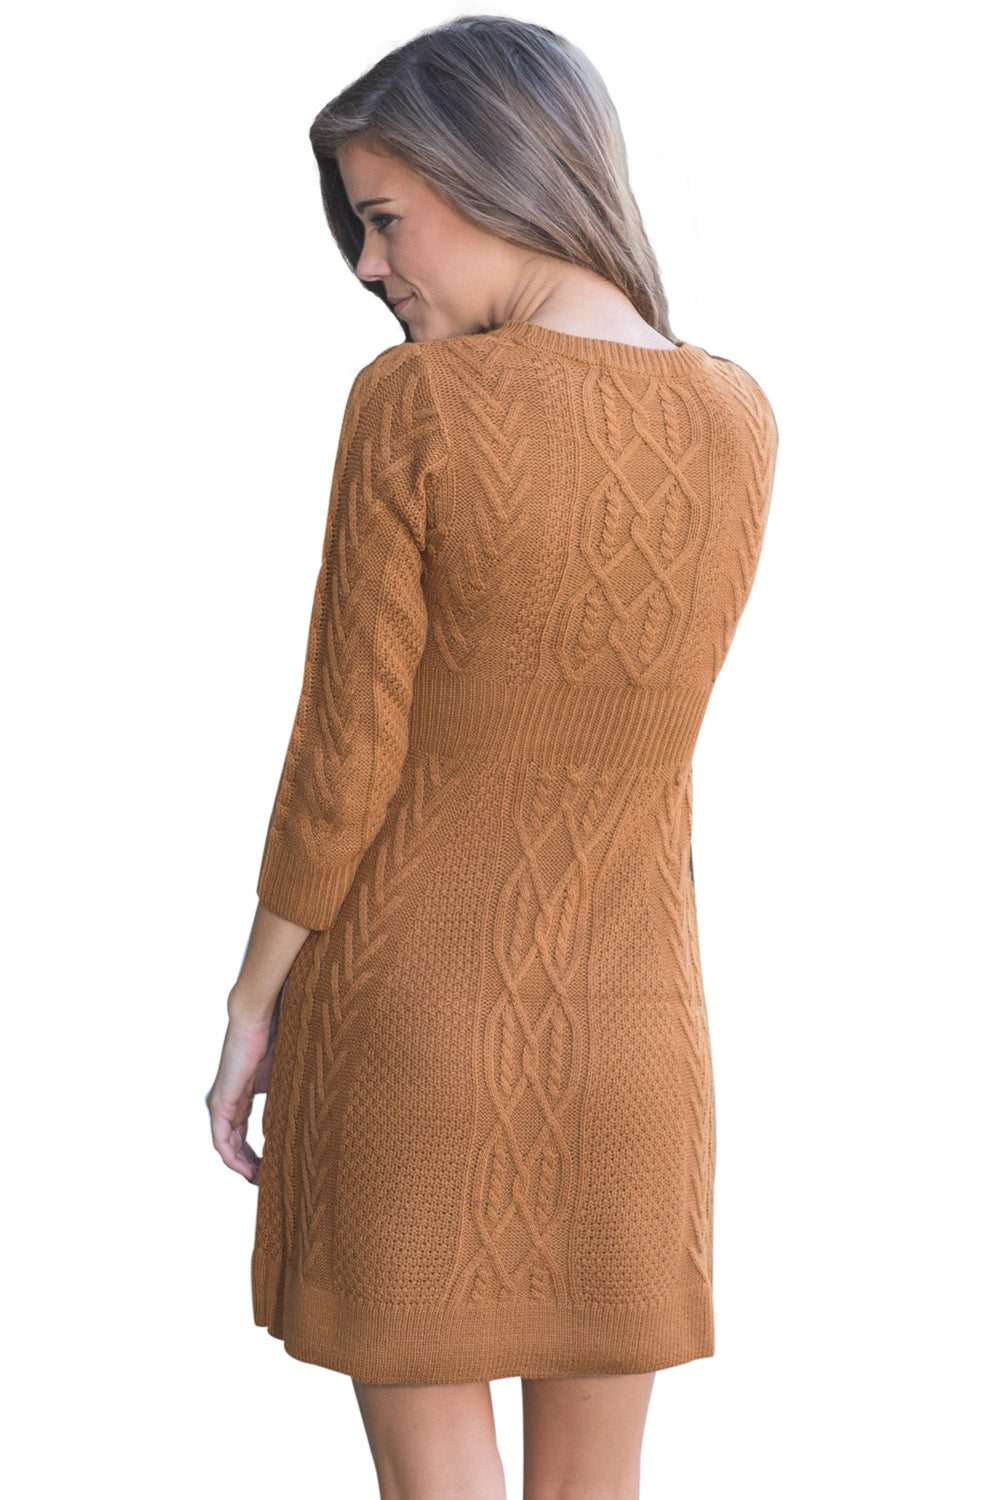 5e82fe4835c Sexy Brown Cable Knit Fitted 3 4 Sleeve Sweater Dress – SEXY ...